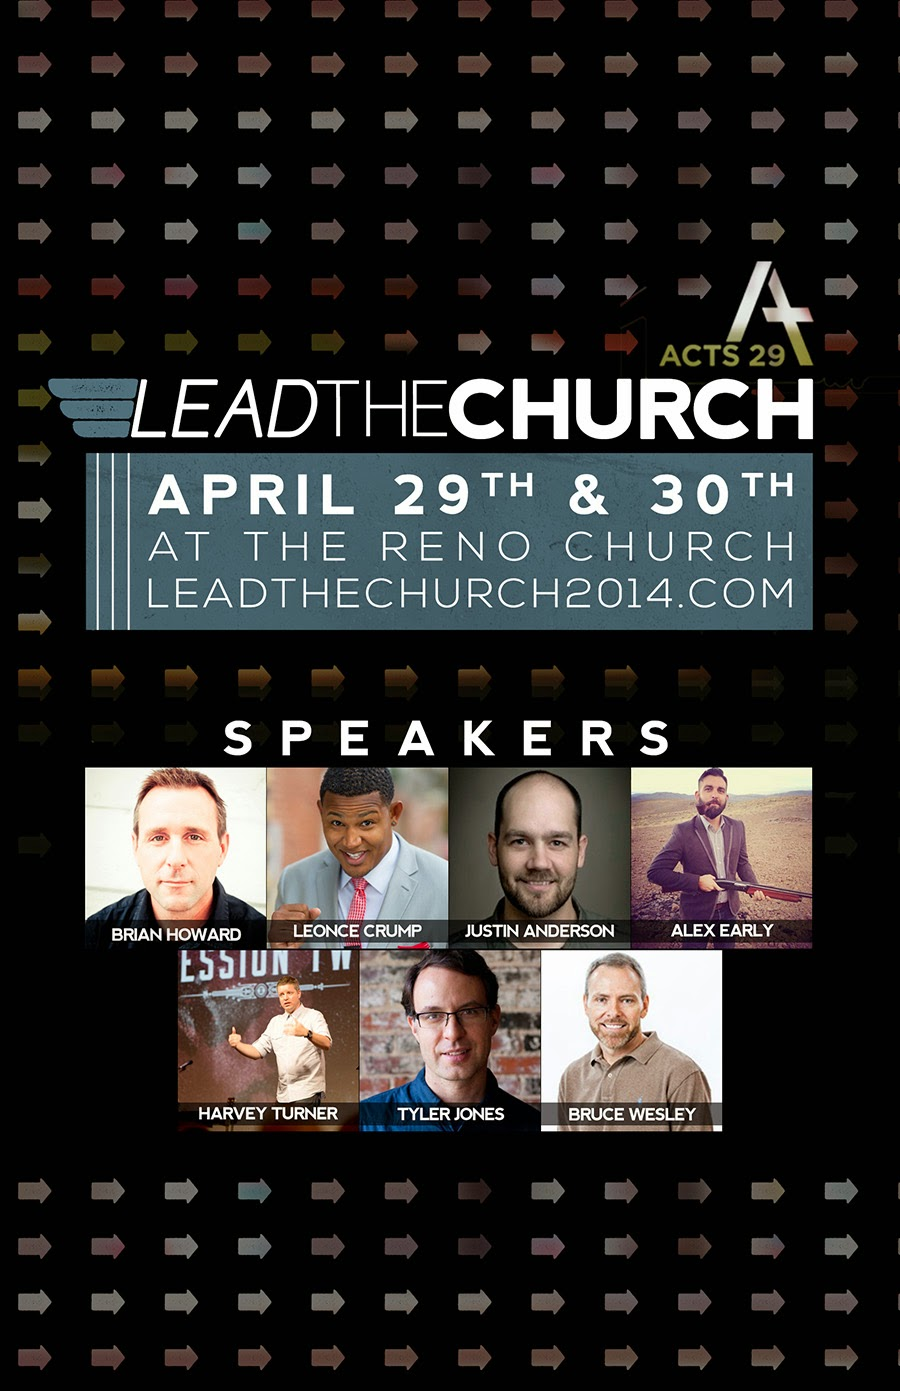 http://www.livingstoneschurches.com/leadthechurch2014.com/schedule.php